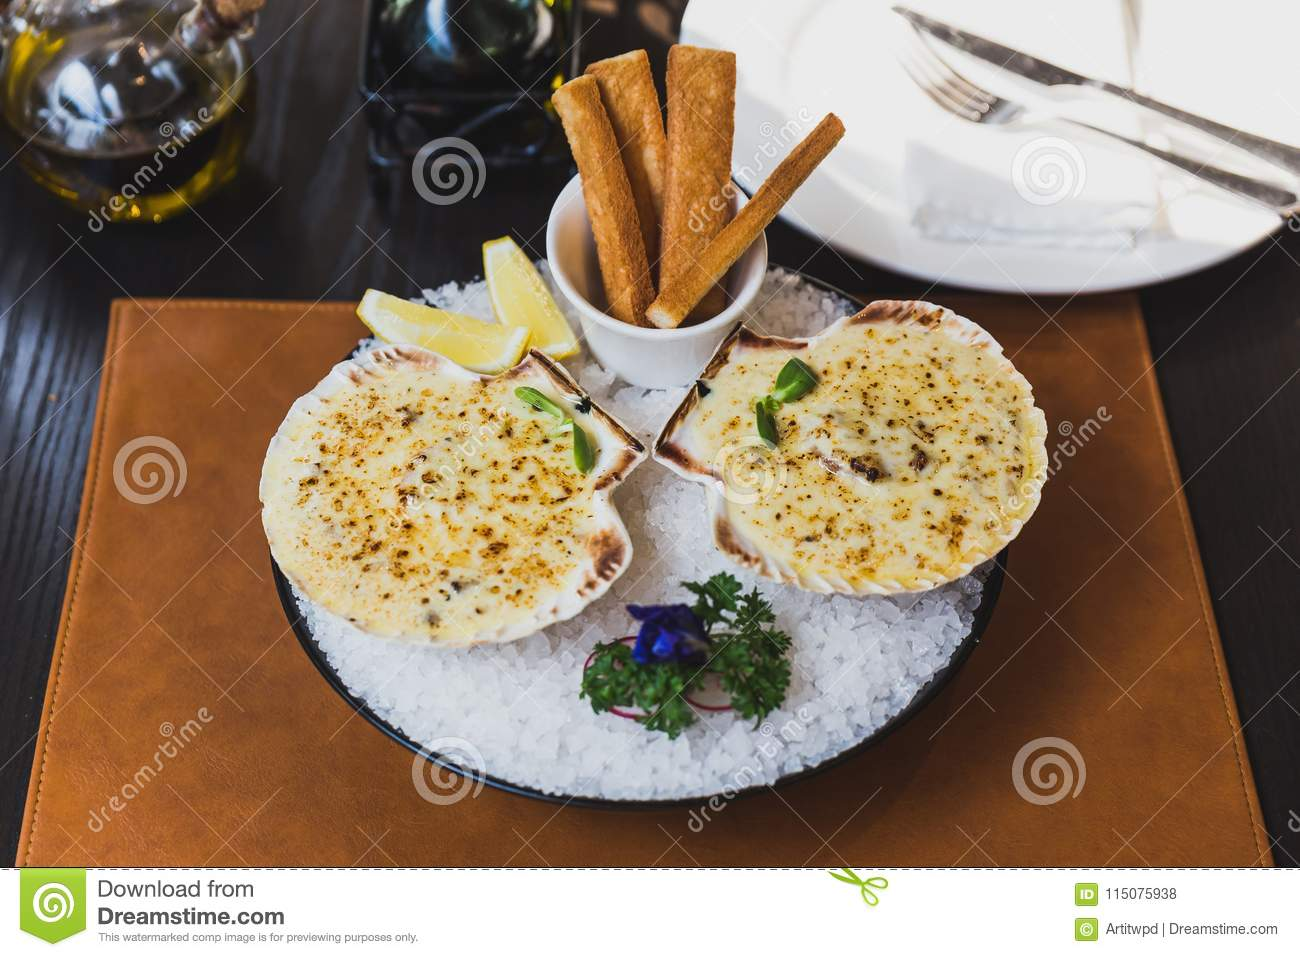 Baked scallops with cheese served with sliced lemon and bread sticks on bowl with full of sea salt